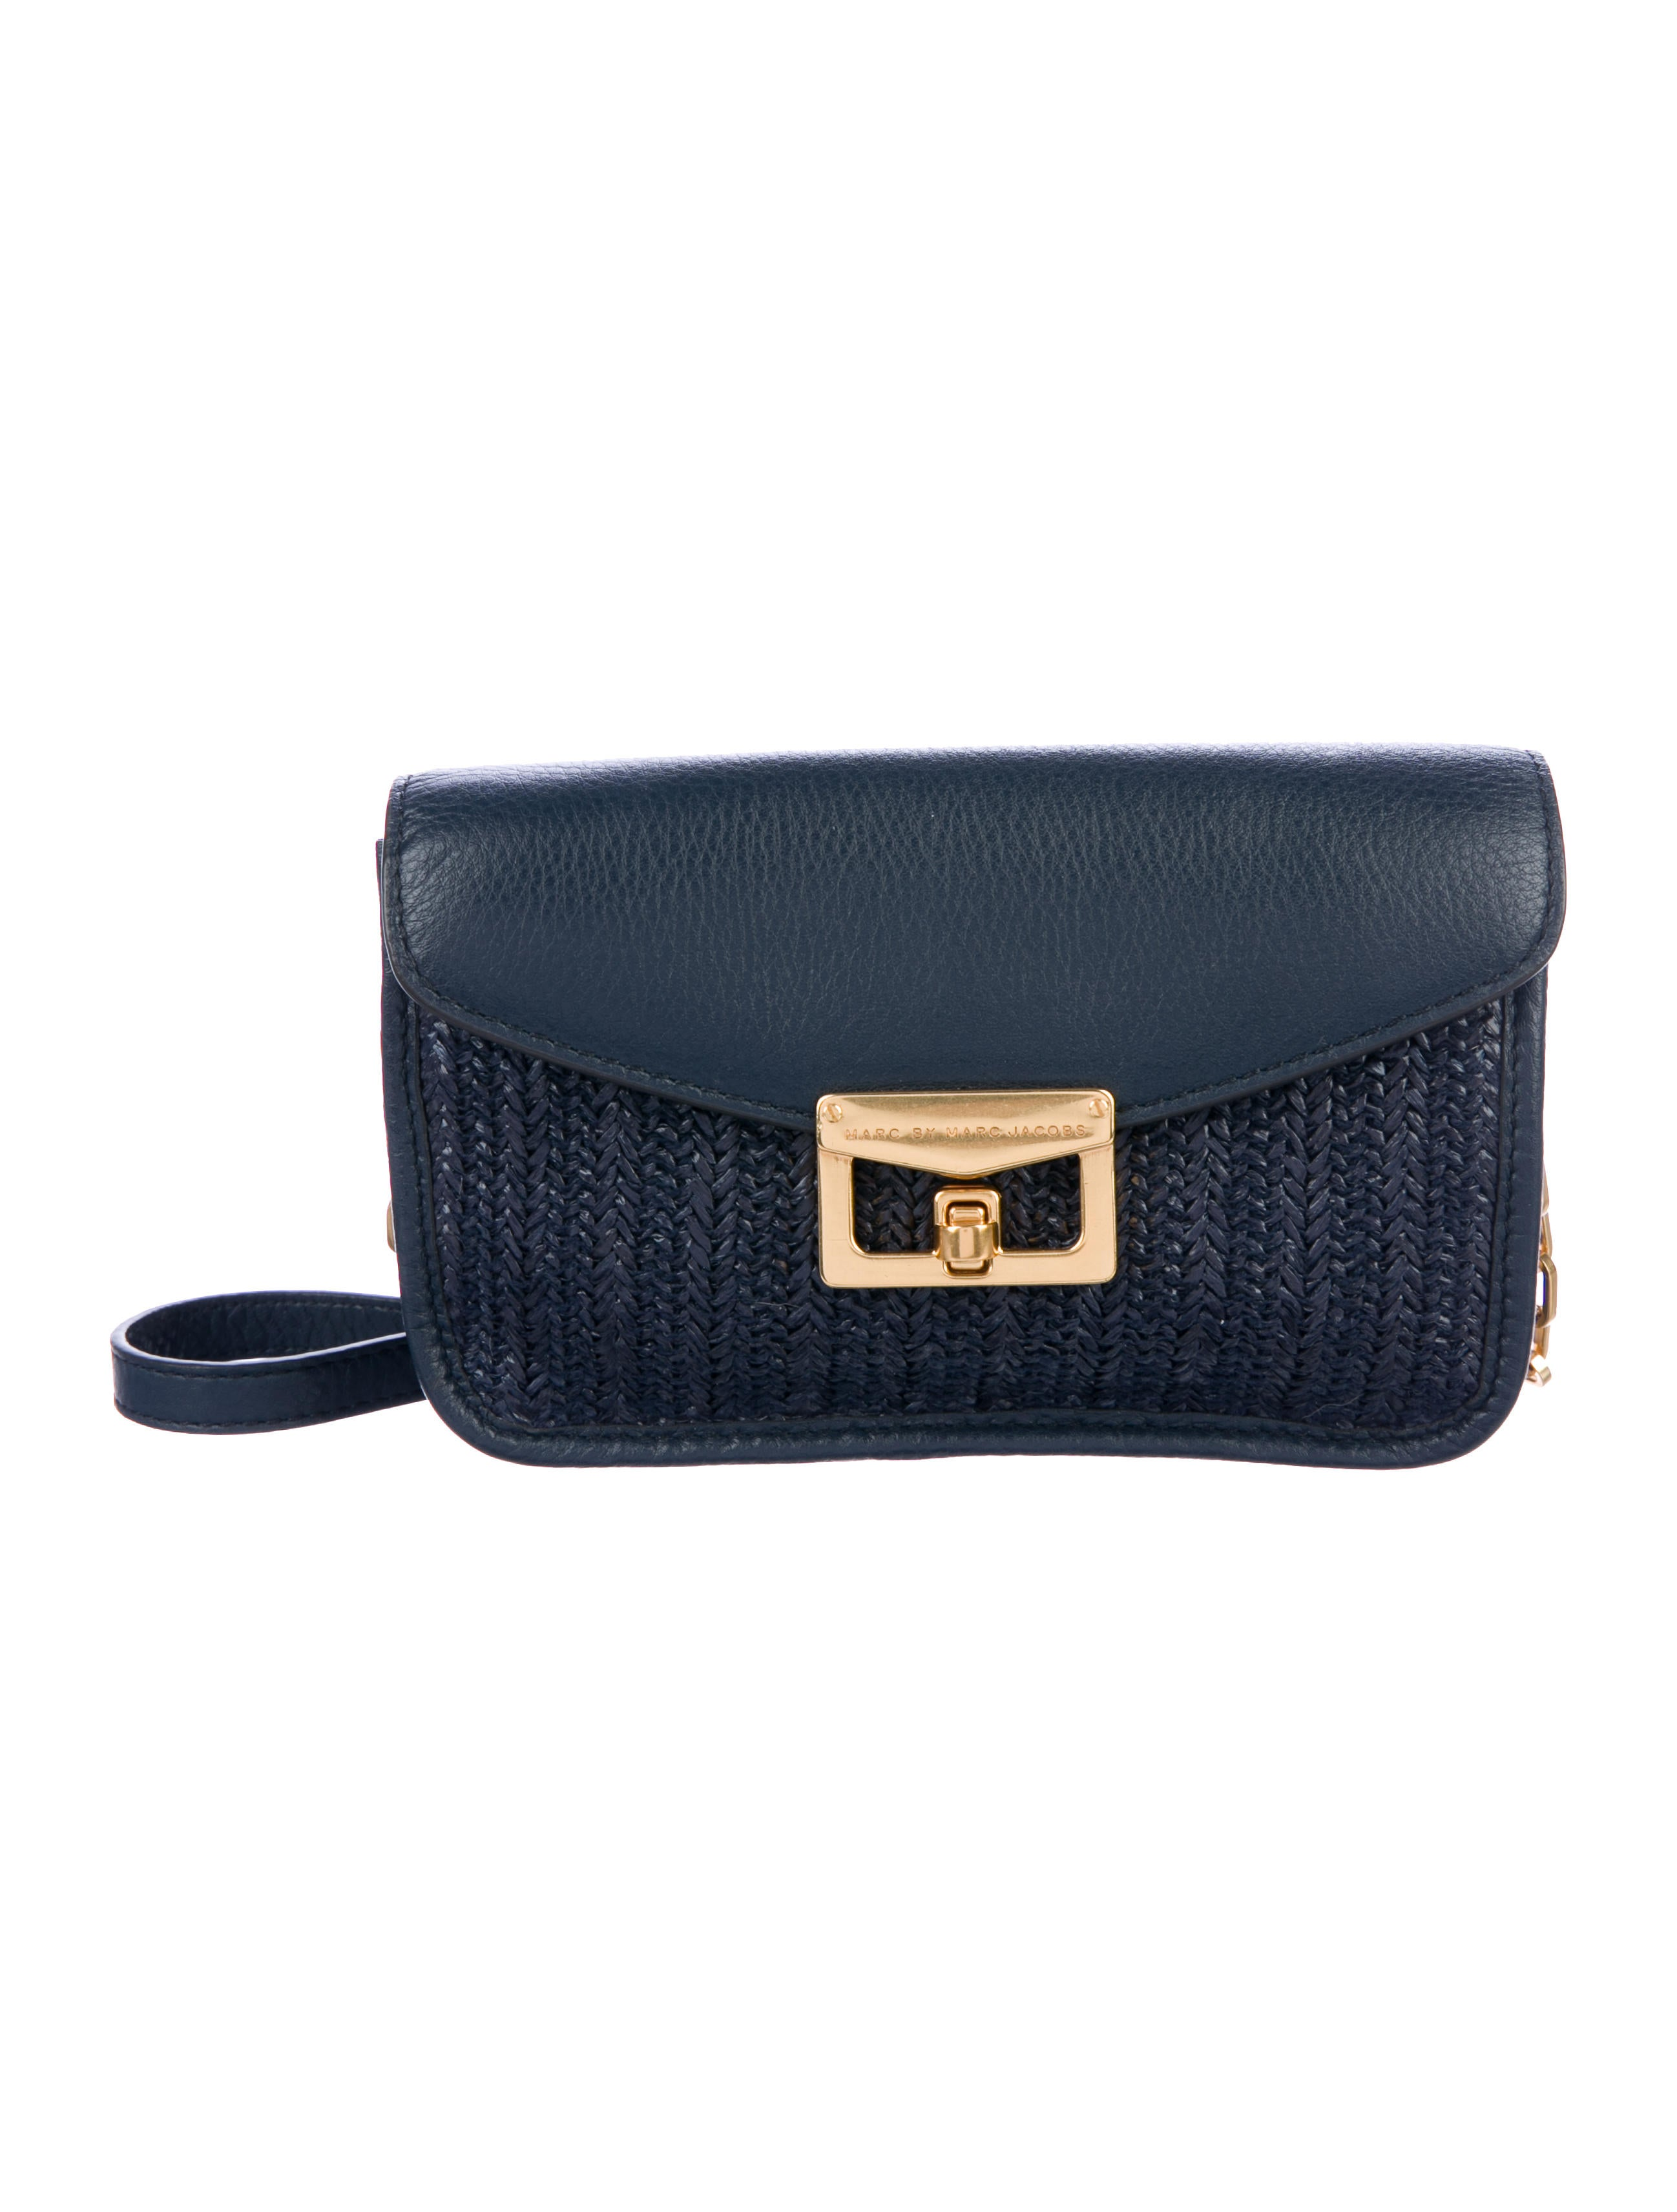 27be1cf4fdfd Crossbody by Link Bag amp  Chain Jacobs Leather Woven Marc Marc gn74qOO ...